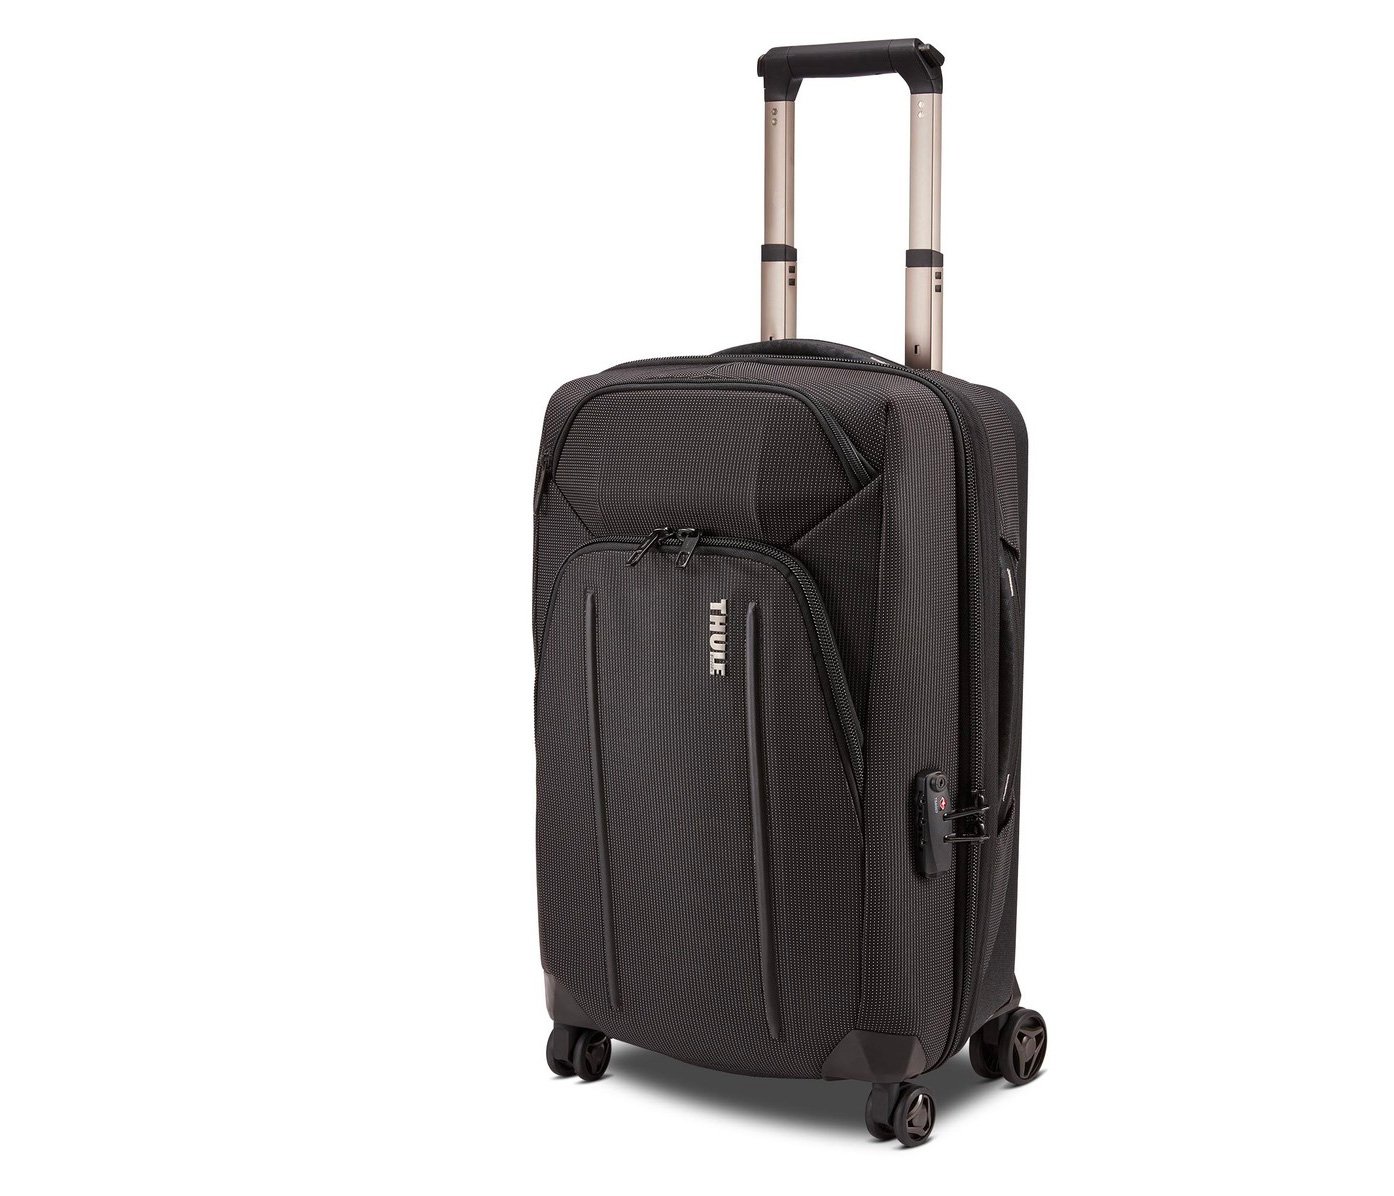 Thule Rolls Out Crossover 2 Carry On Spinner at werd.com